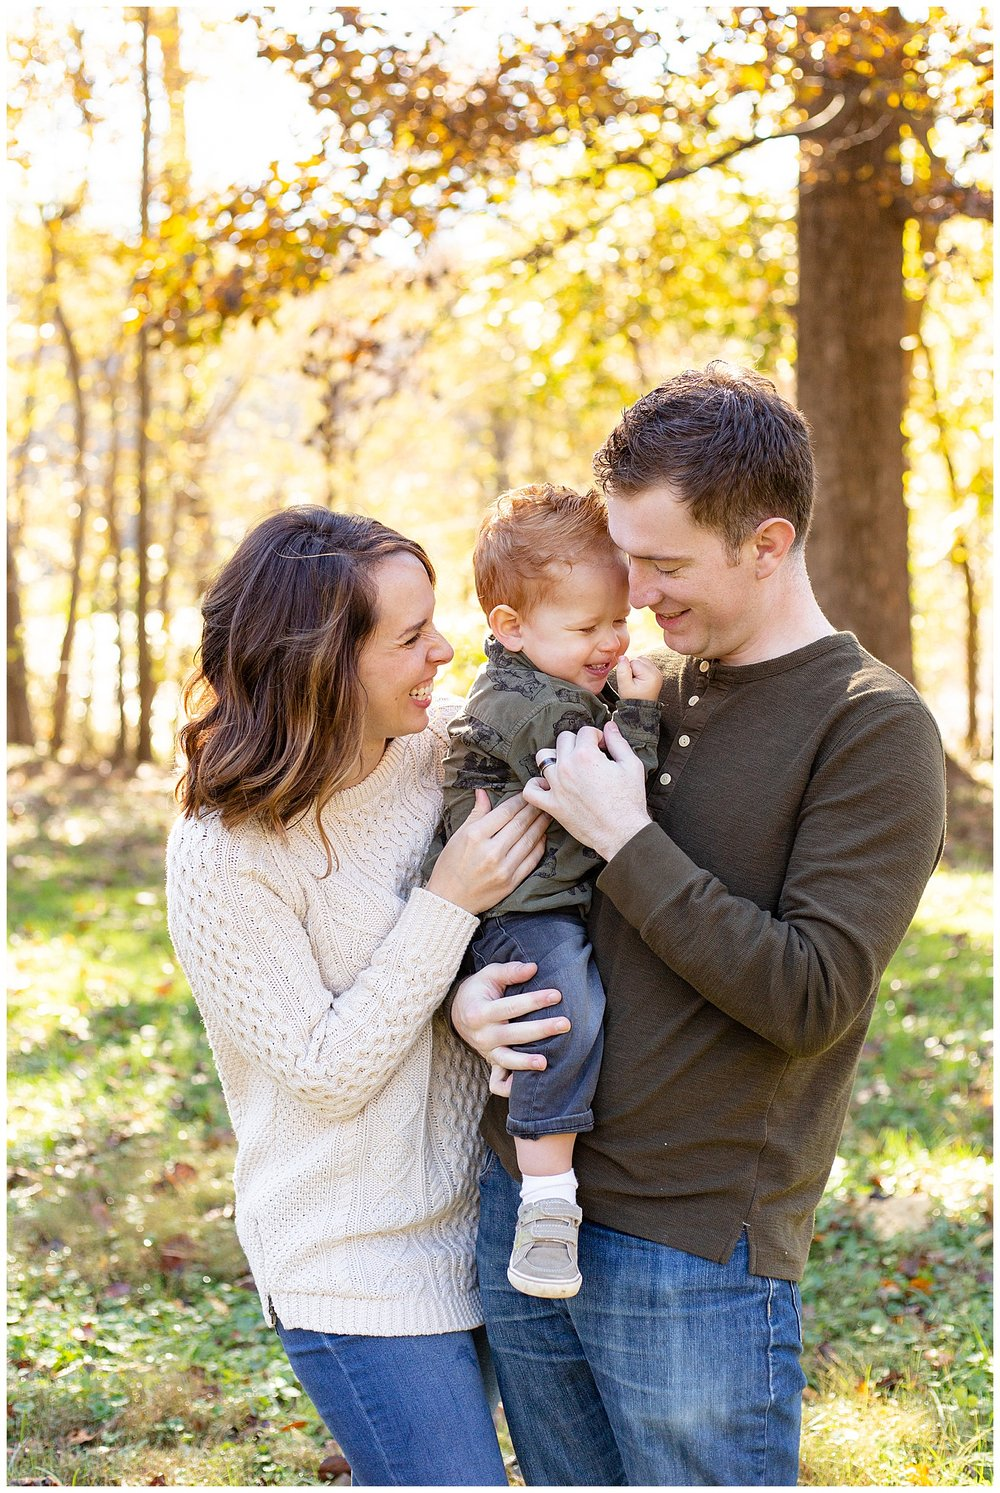 emily-belson-photography-washington-dc-fall-family-09.jpg